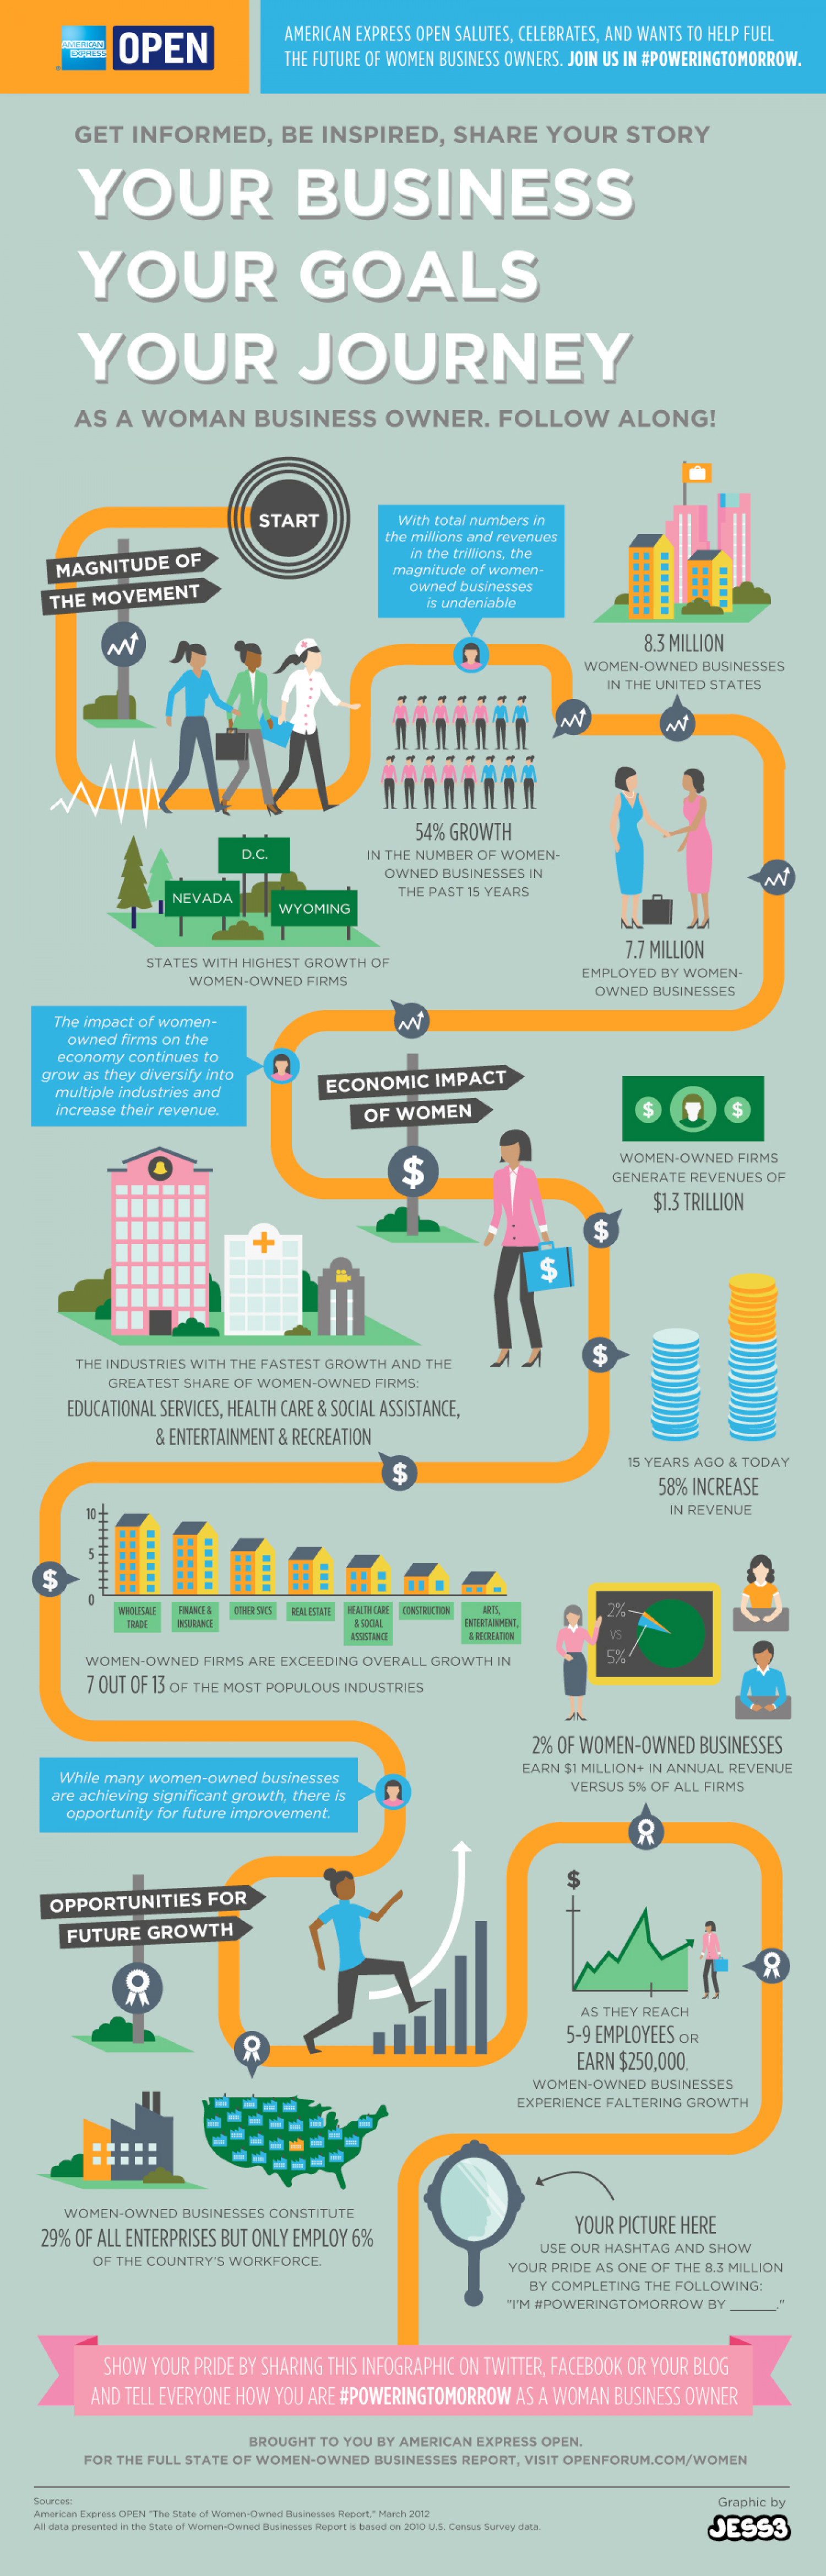 Women Business Owners are Powering Tomorrow Infographic